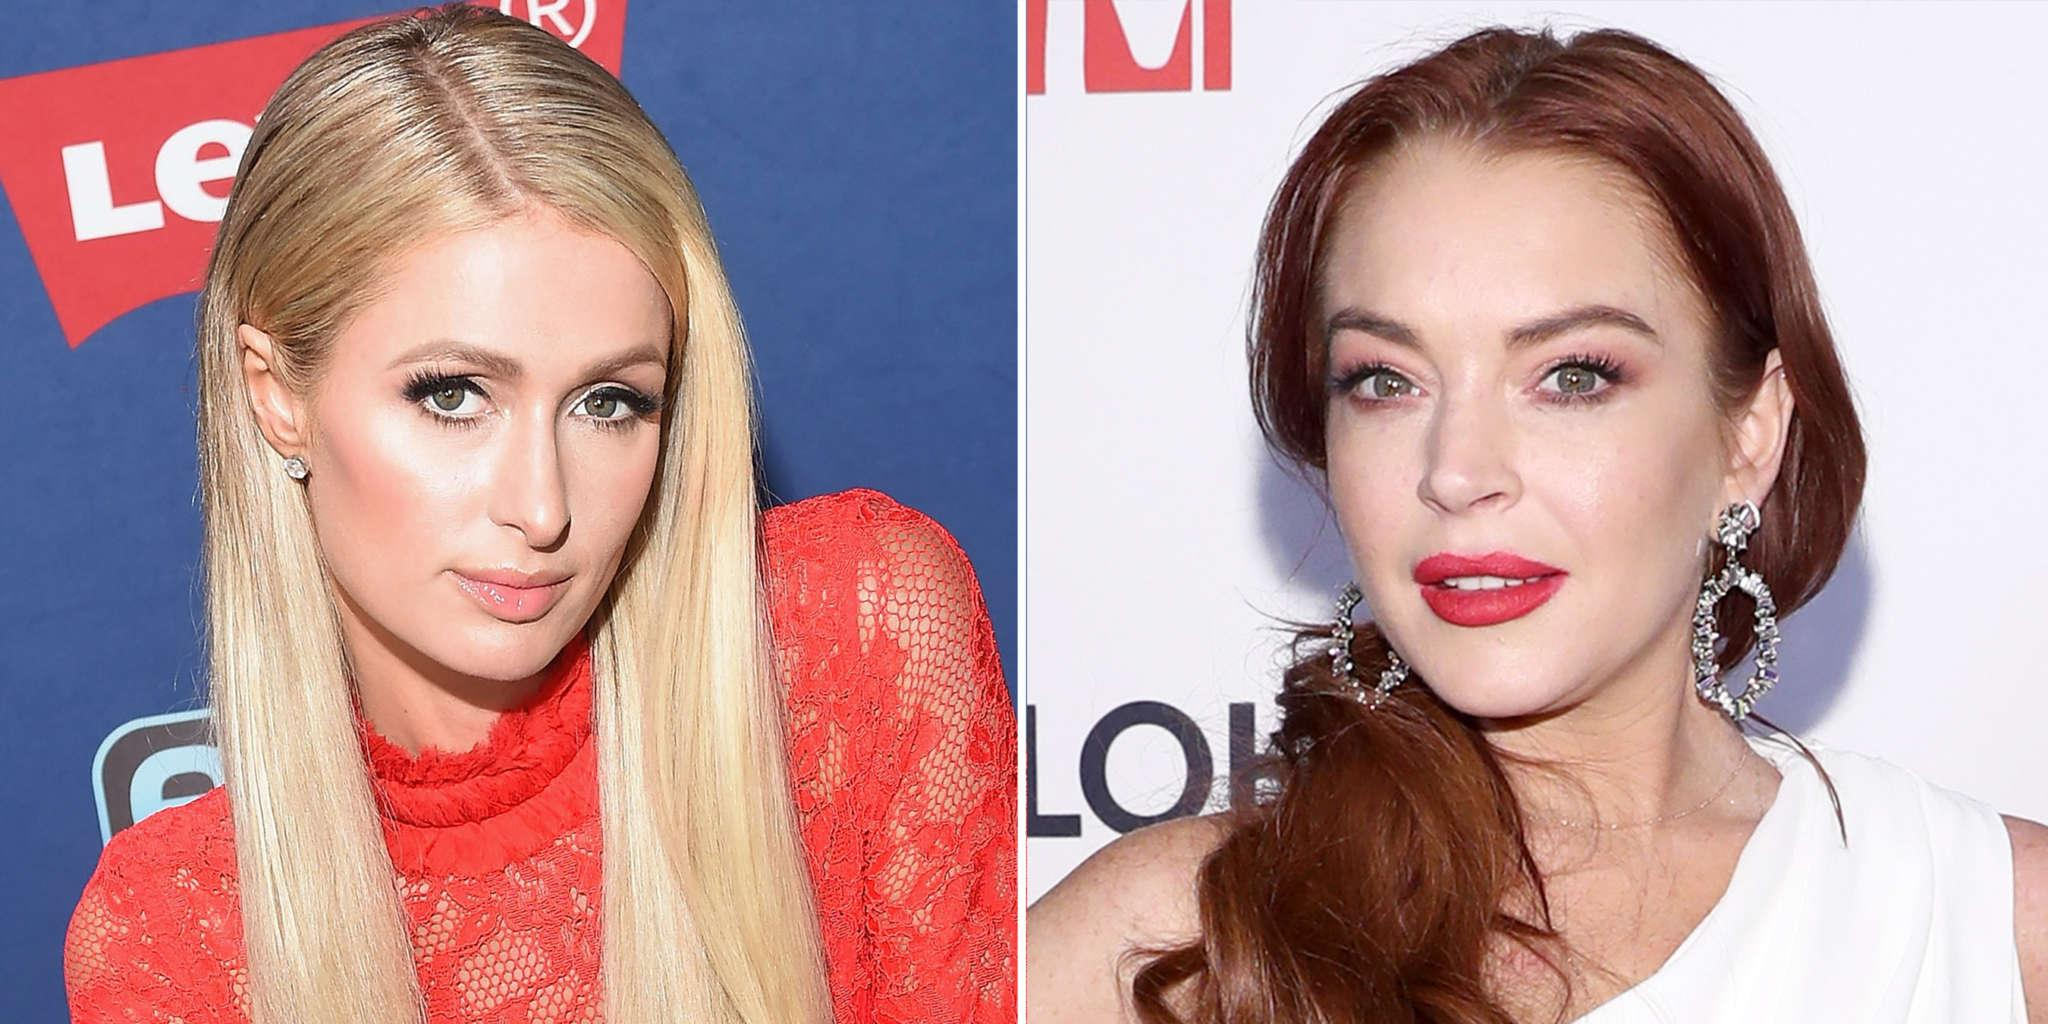 Lindsay Lohan Addresses The Speculations She And Paris Hilton Are Beefing Again